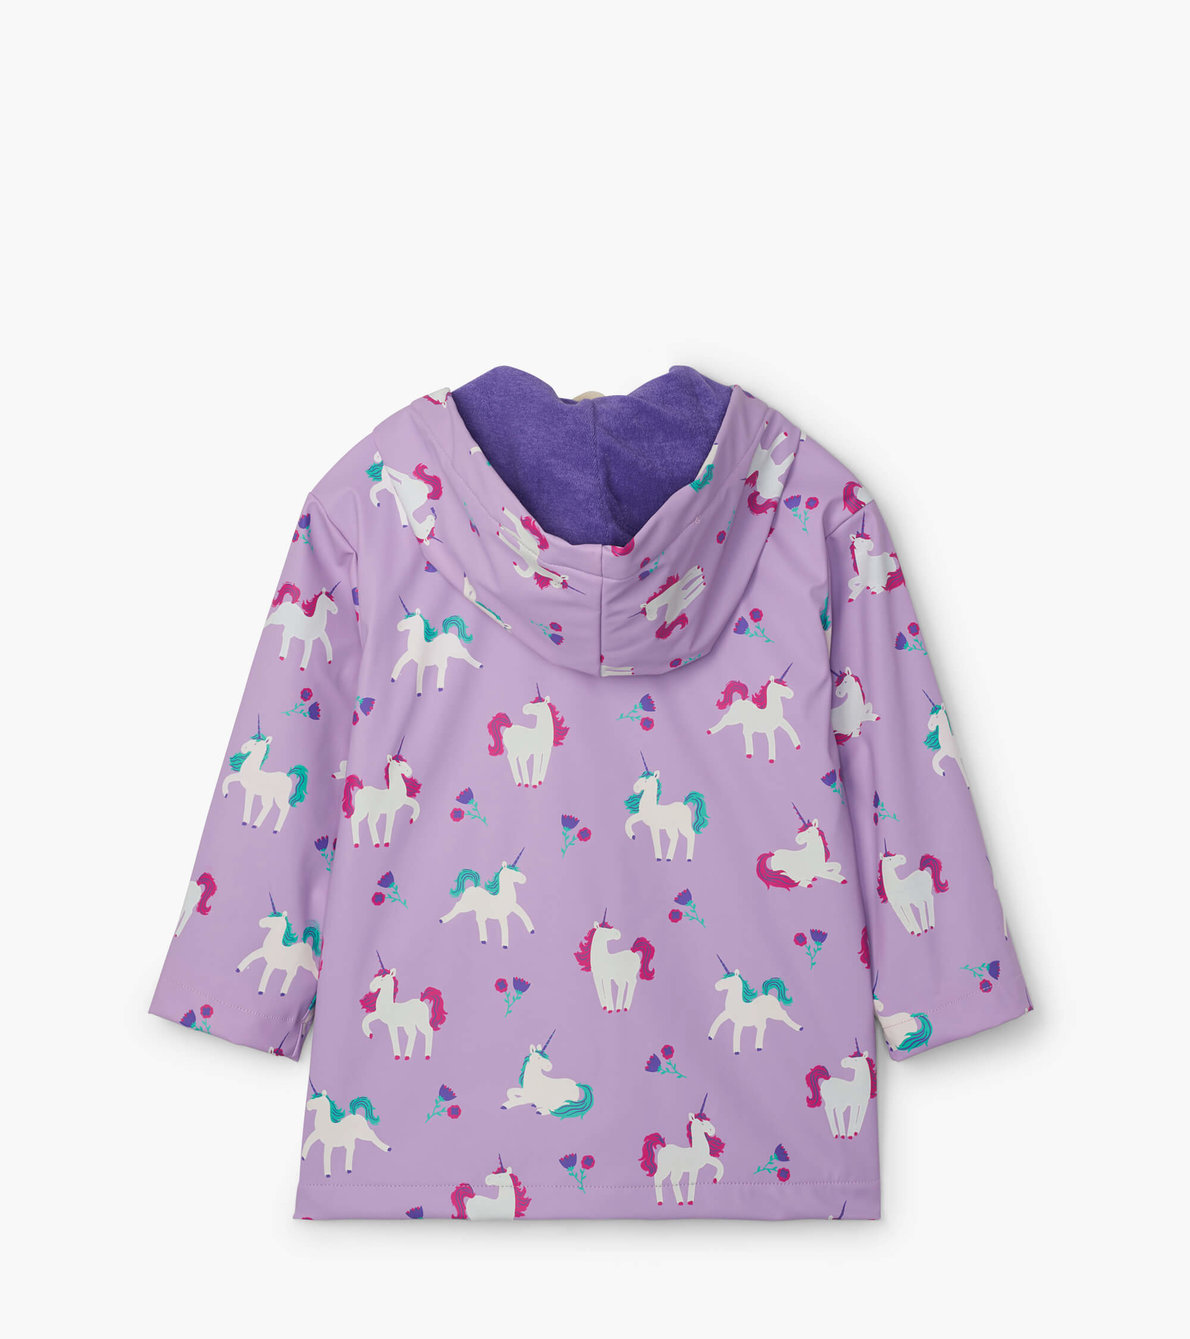 View larger image of Playful Unicorns Colour Changing Raincoat